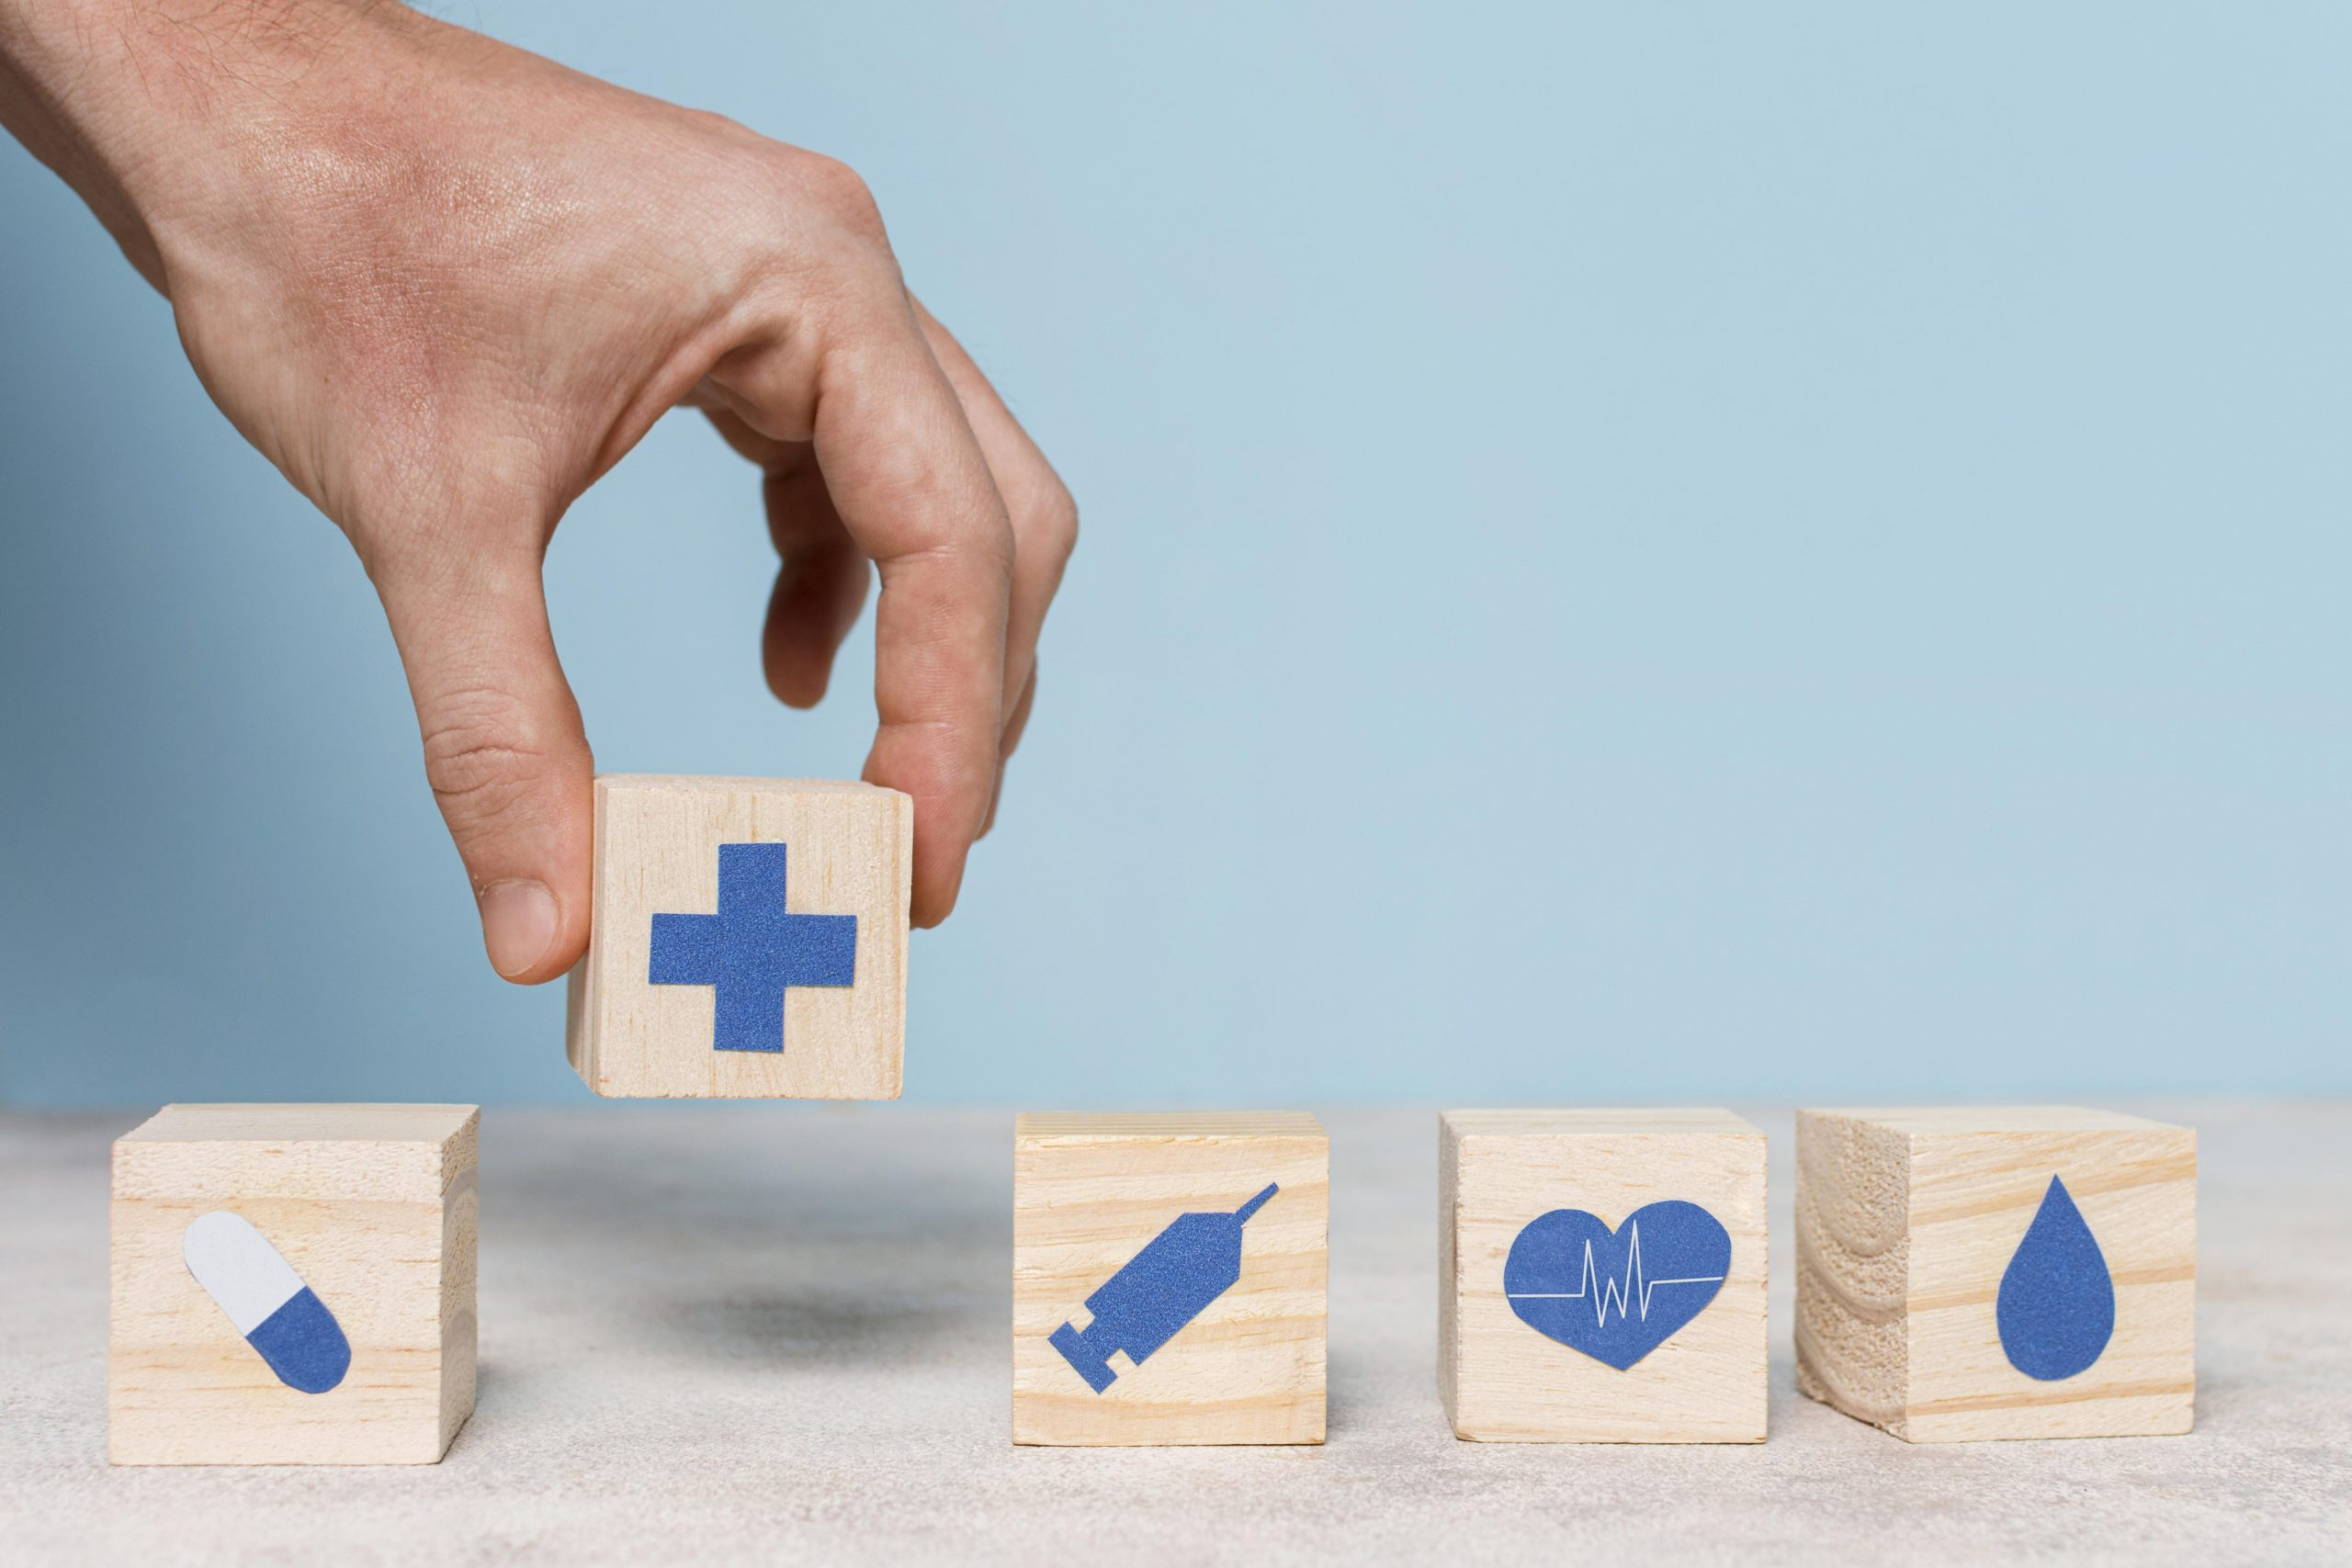 What are the advantages of EHR systems? | Concise Software